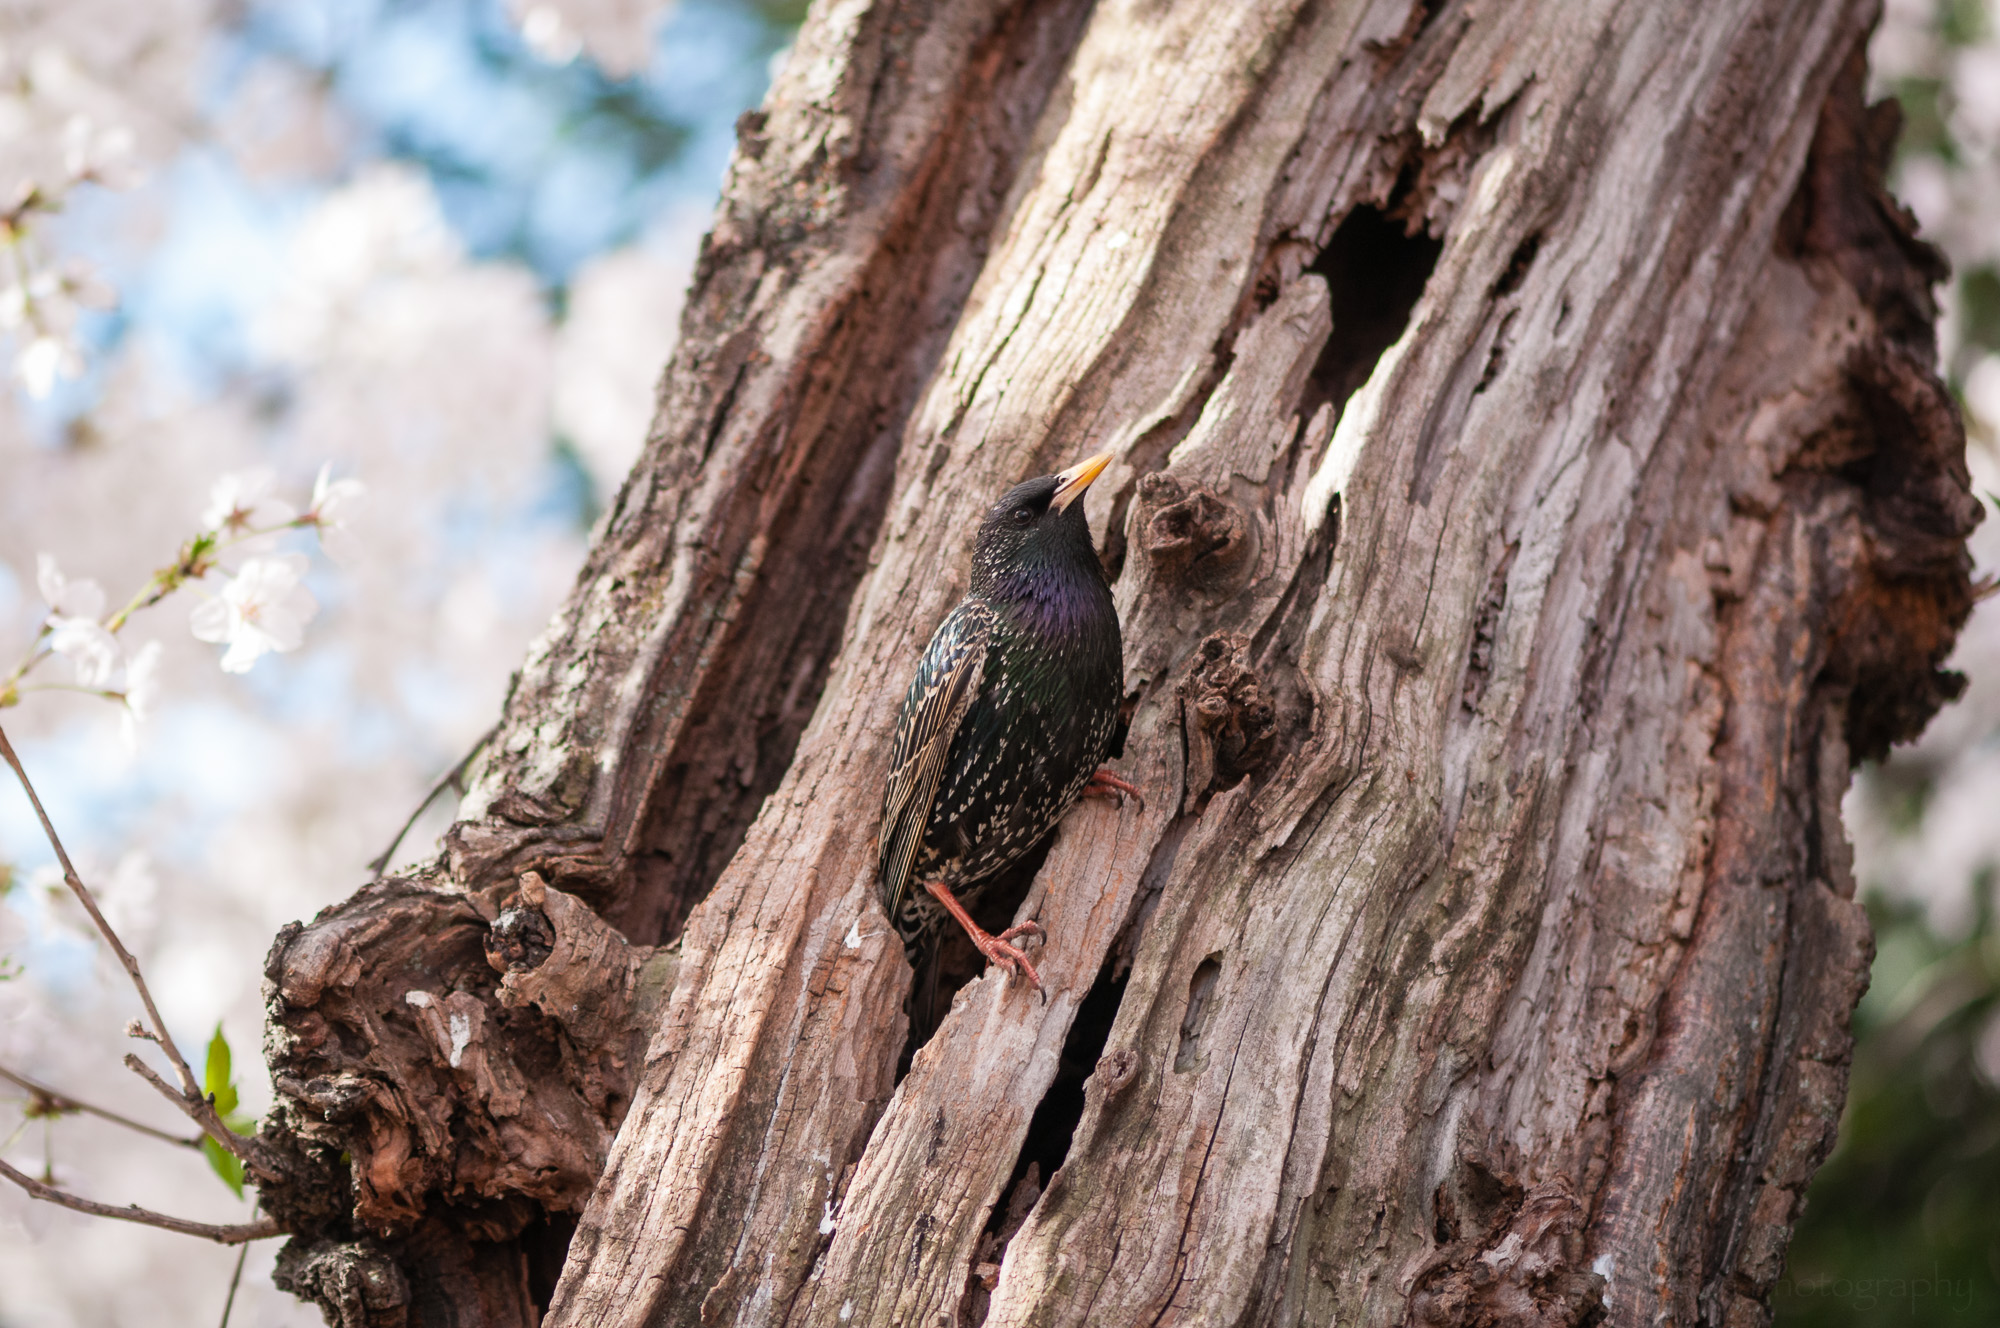 European Starling emerging from its nesting hole in a cherry tree.